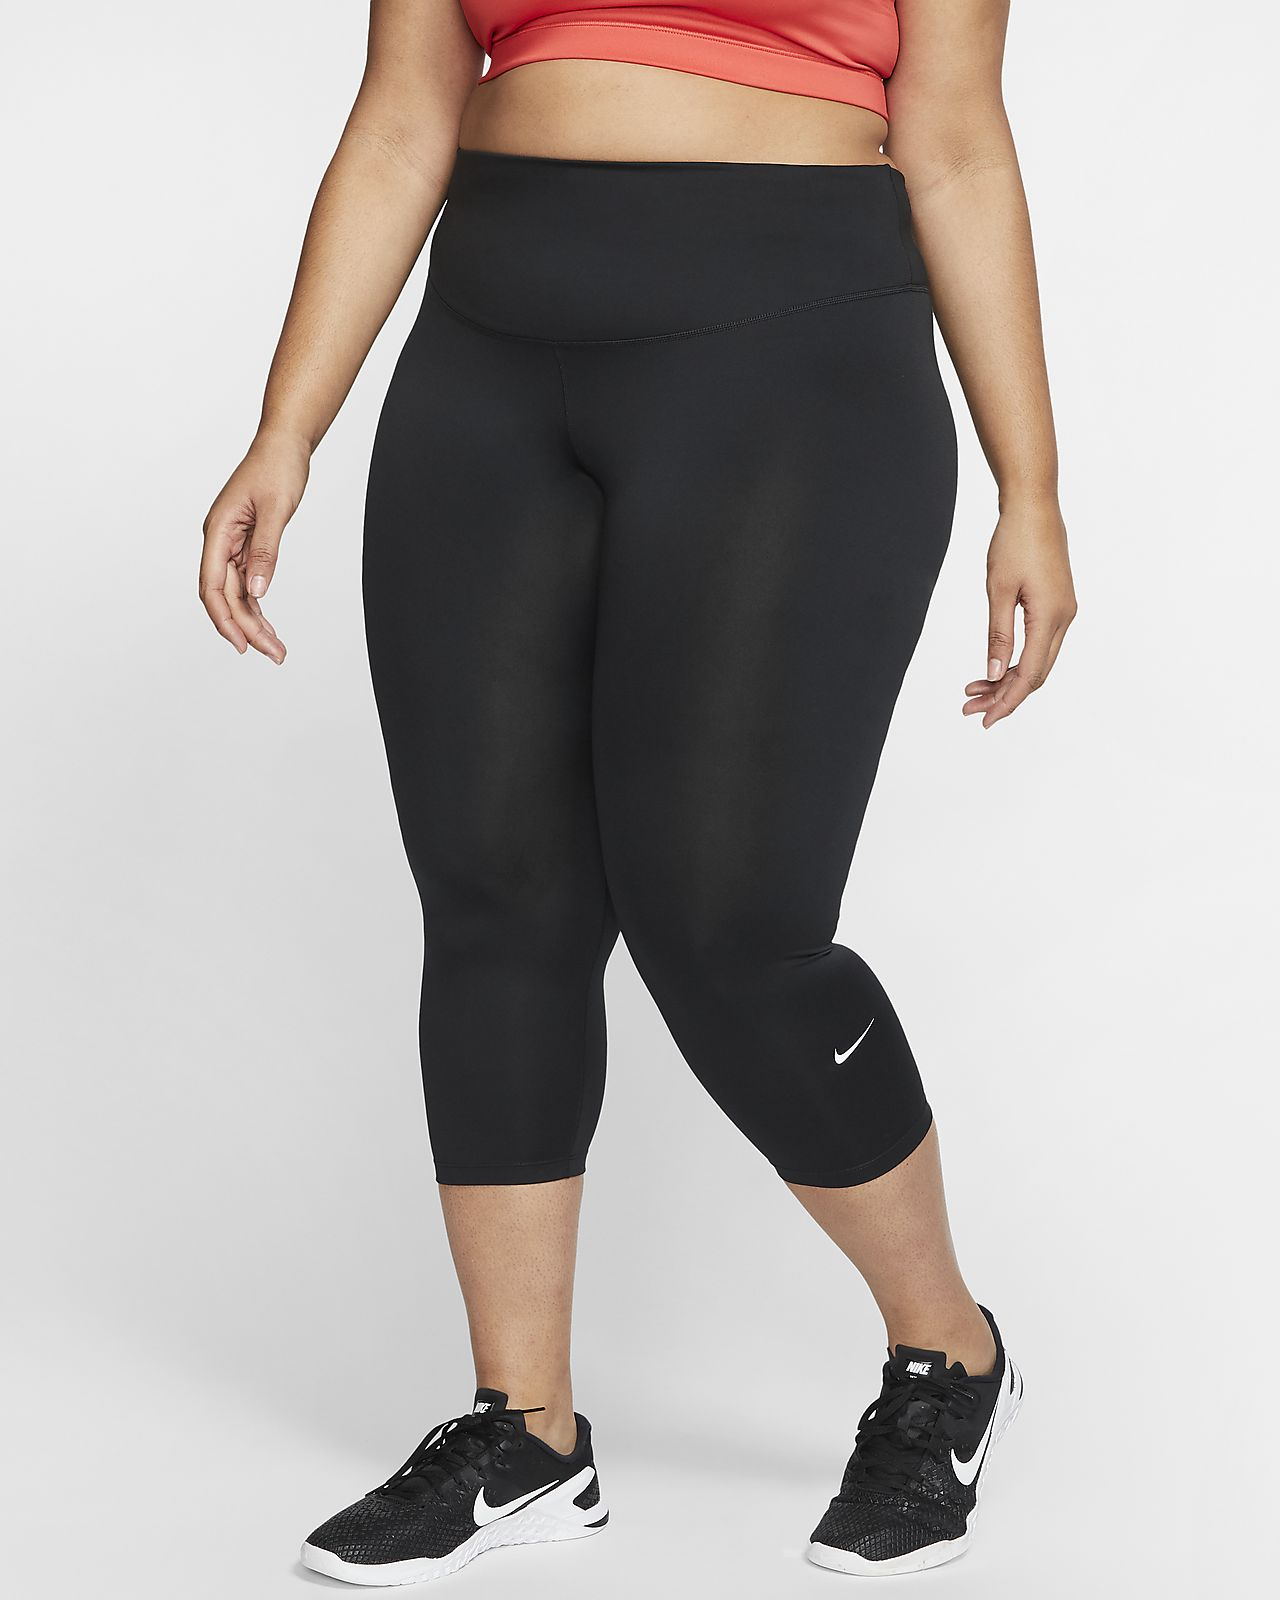 Nike One Malles curtes (talles grans) - Dona